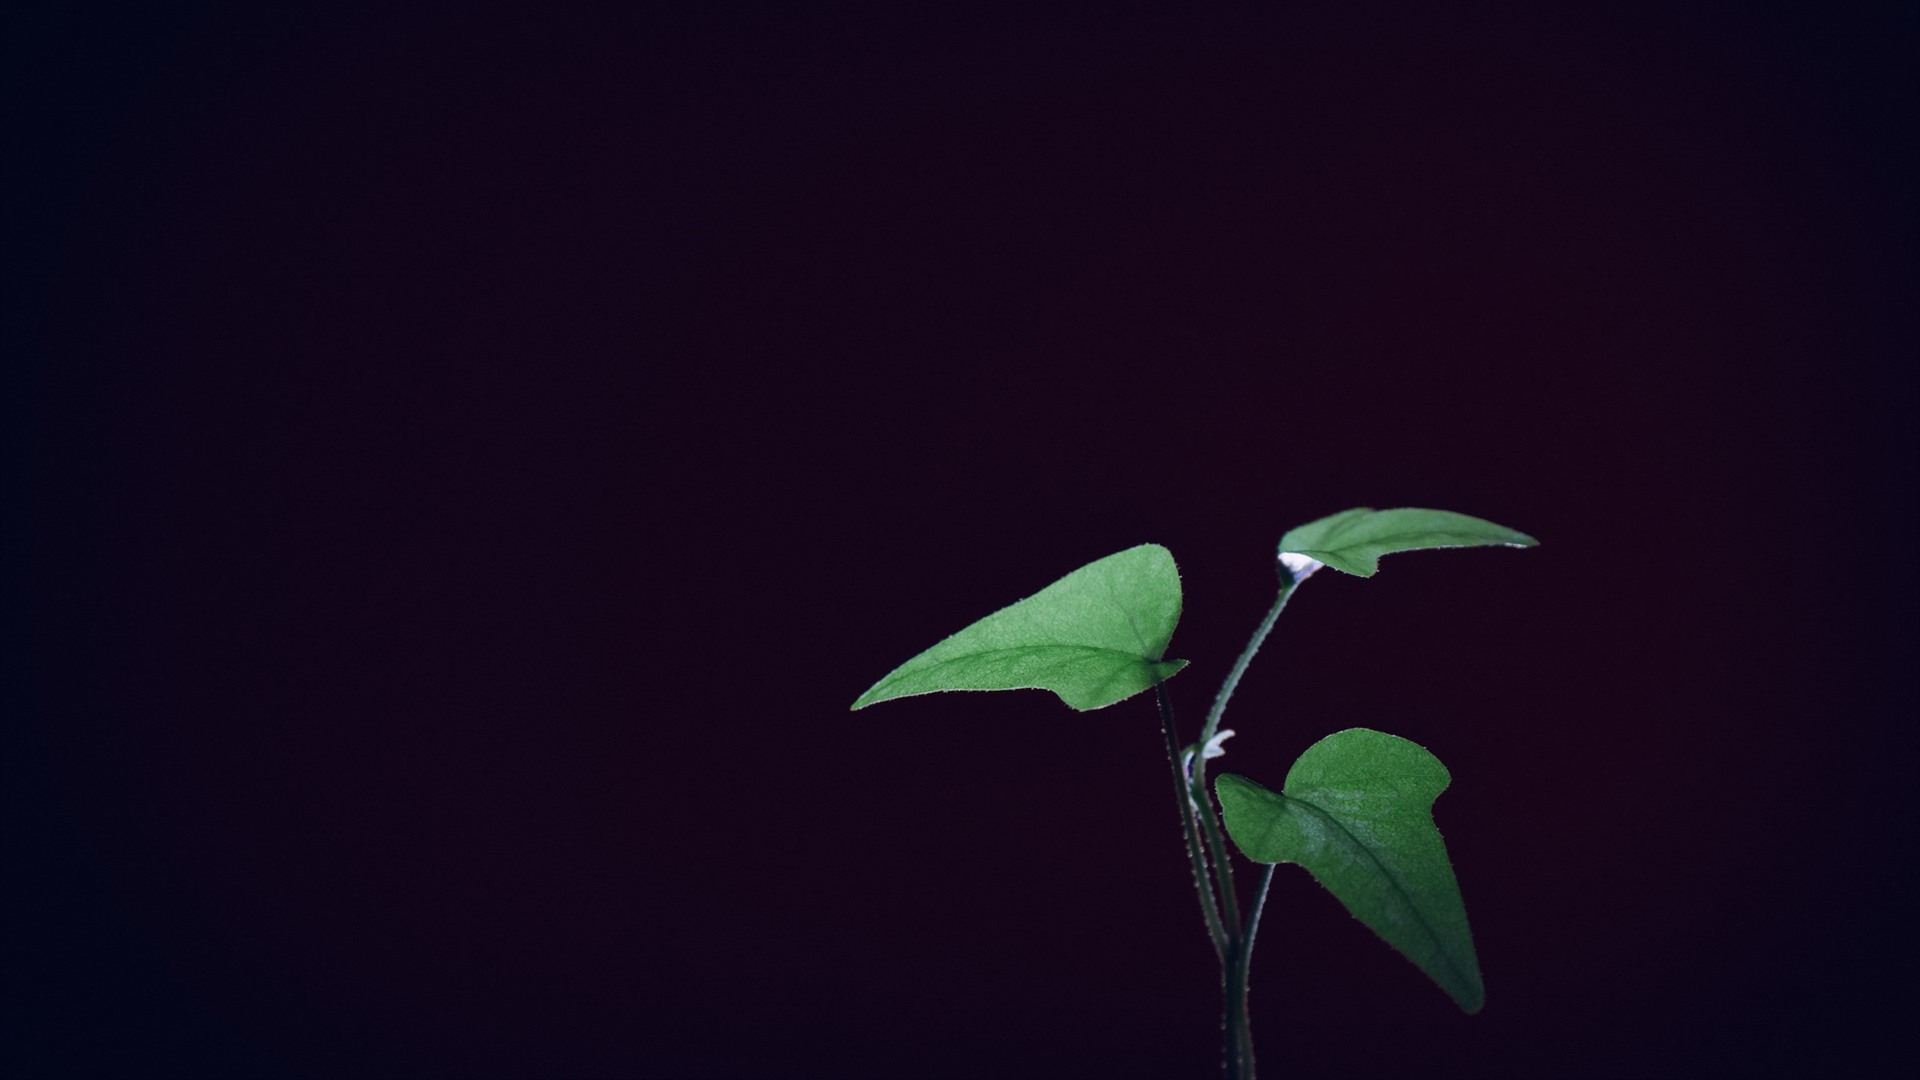 Wallpaper Green Leaves Plants Black Background 1920x1200 Hd Picture Image